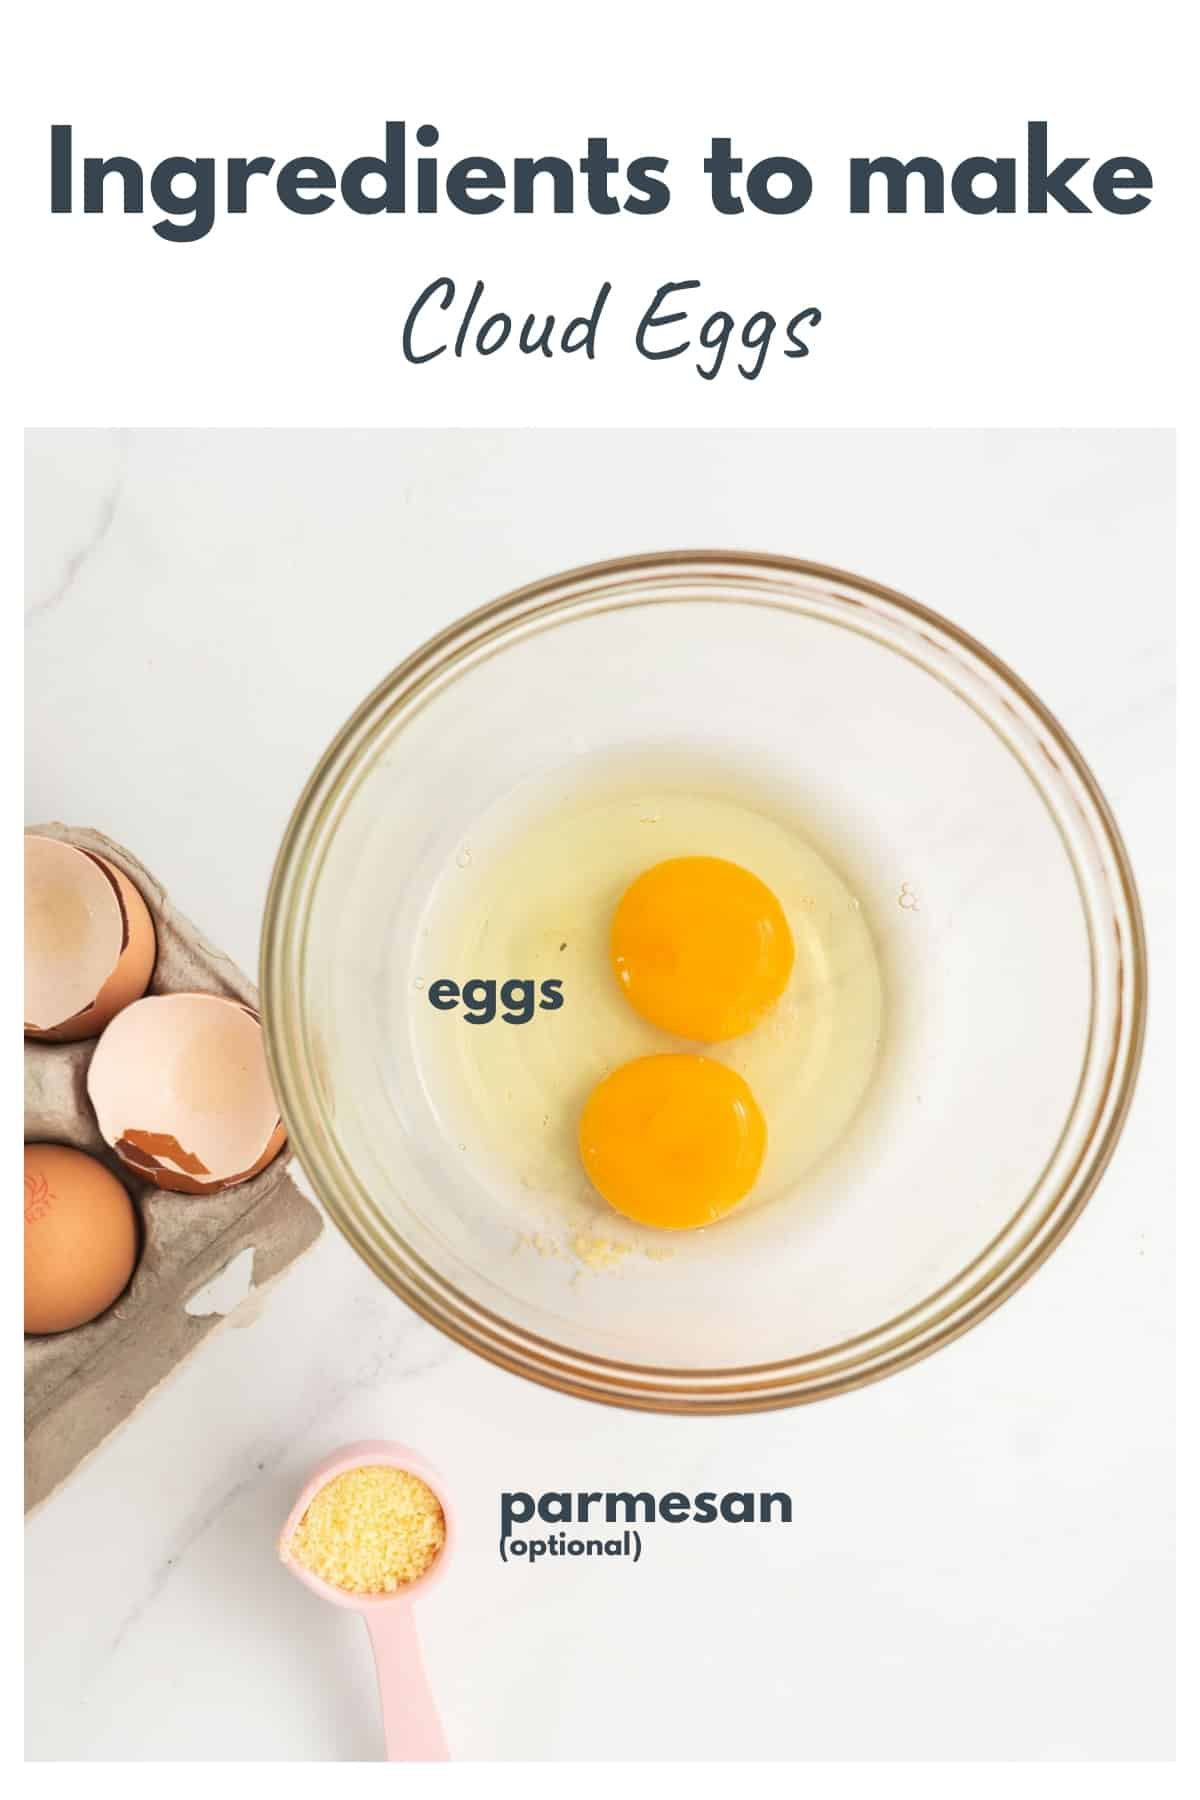 Ingredients to make cloud eggs, eggs and parmesan cheese laid out on a bench top with text overlay.